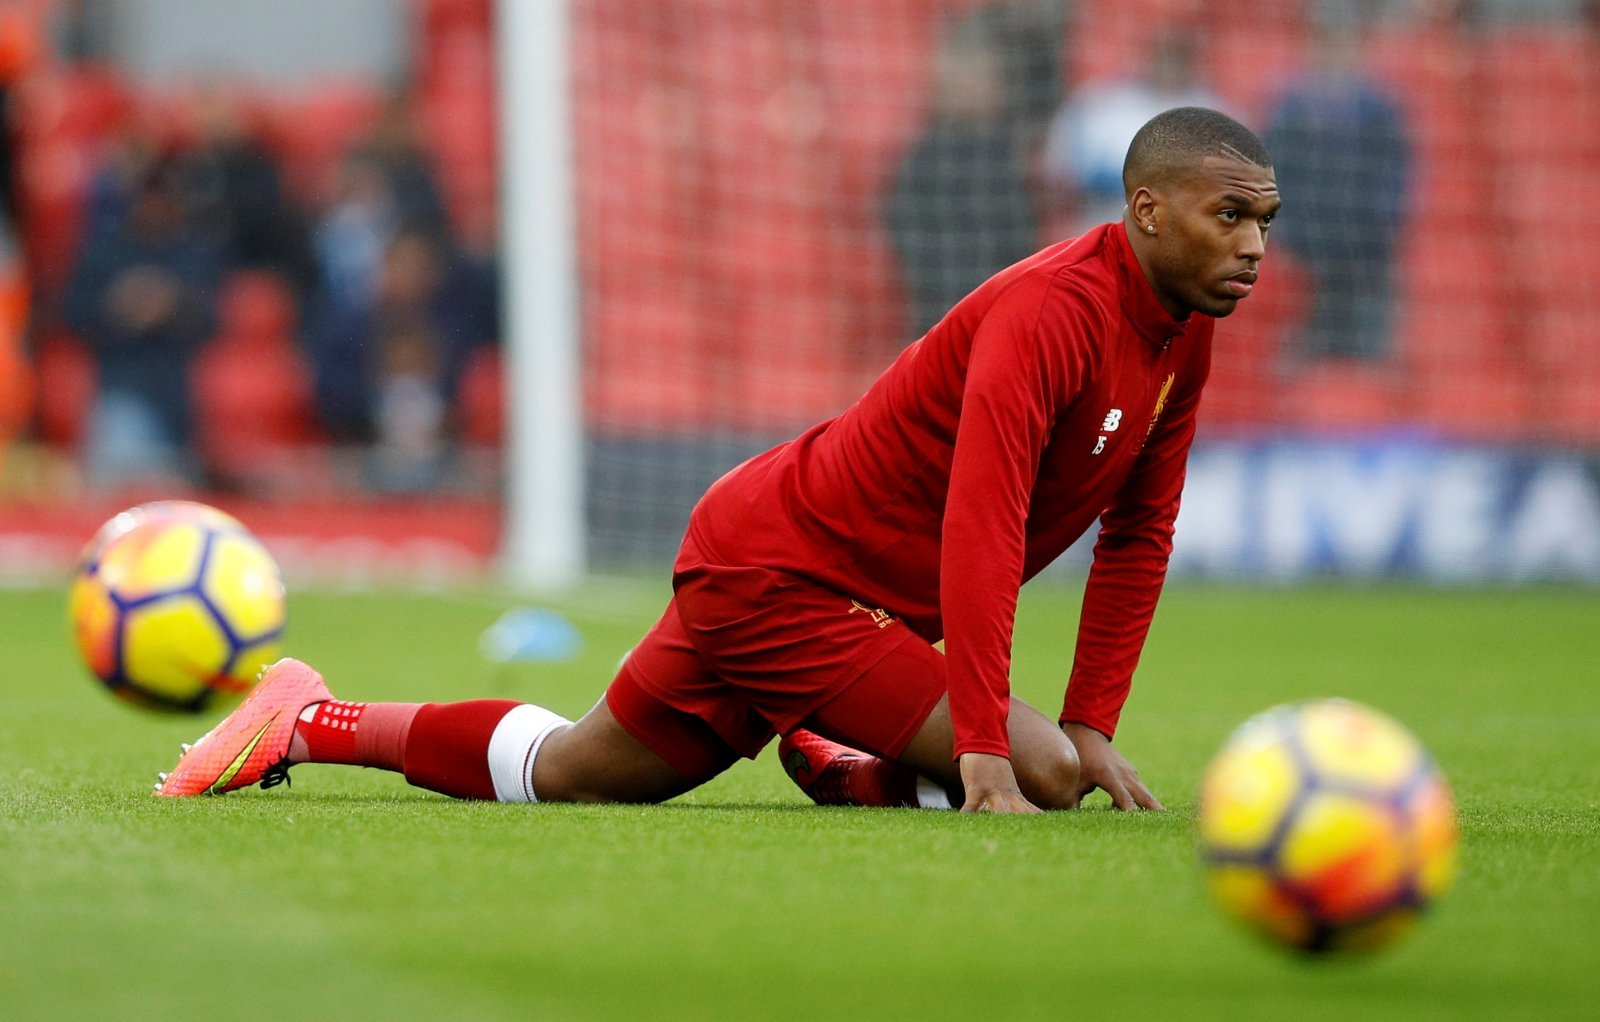 Unstoppable: This Liverpool attack could help fire Klopp to PL glory including Daniel Sturridge